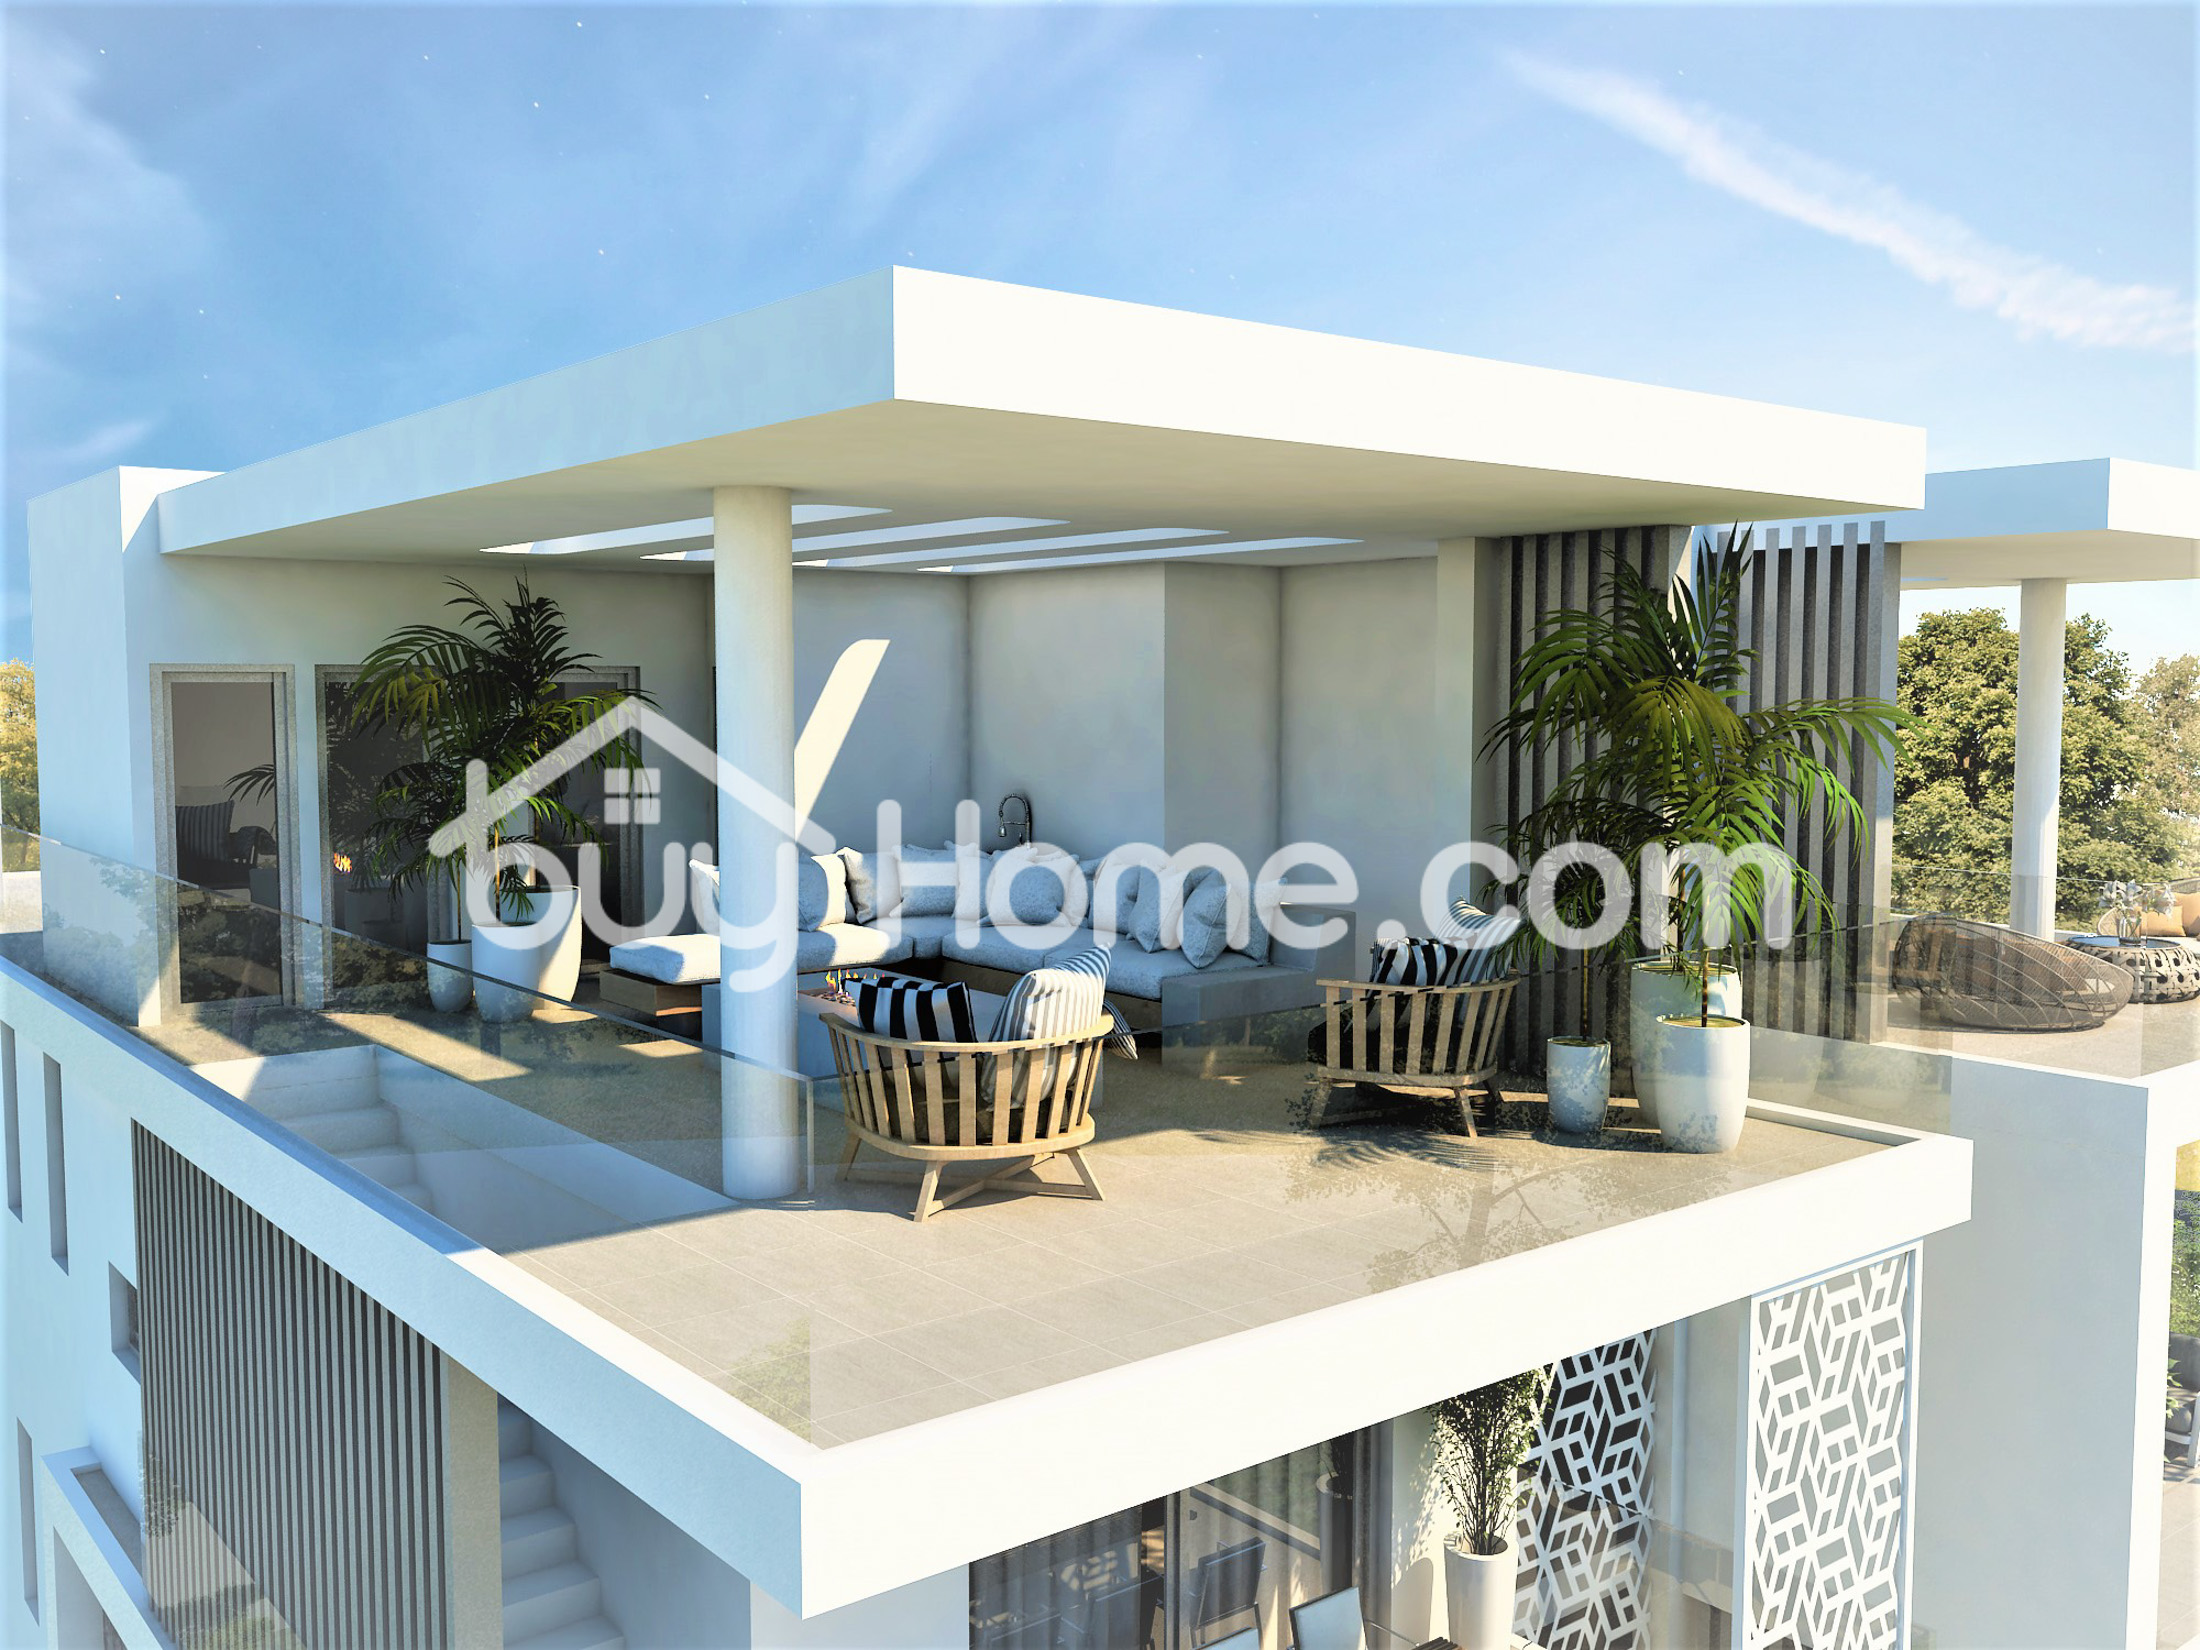 2 Bed Penthouse with Roof Garden   BuyHome